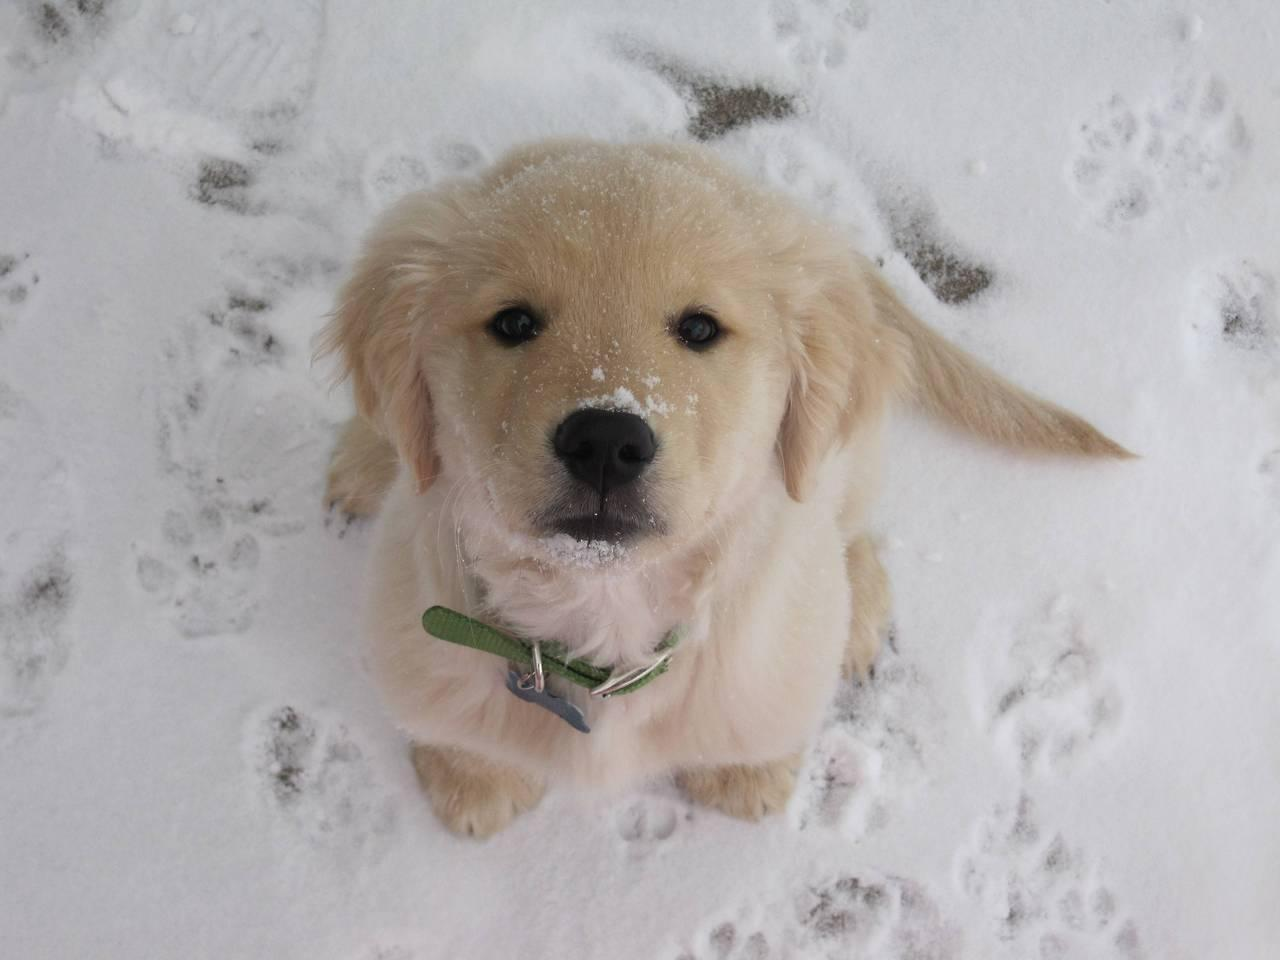 Dog, in the snow. http://t.co/2wTV2GctAX